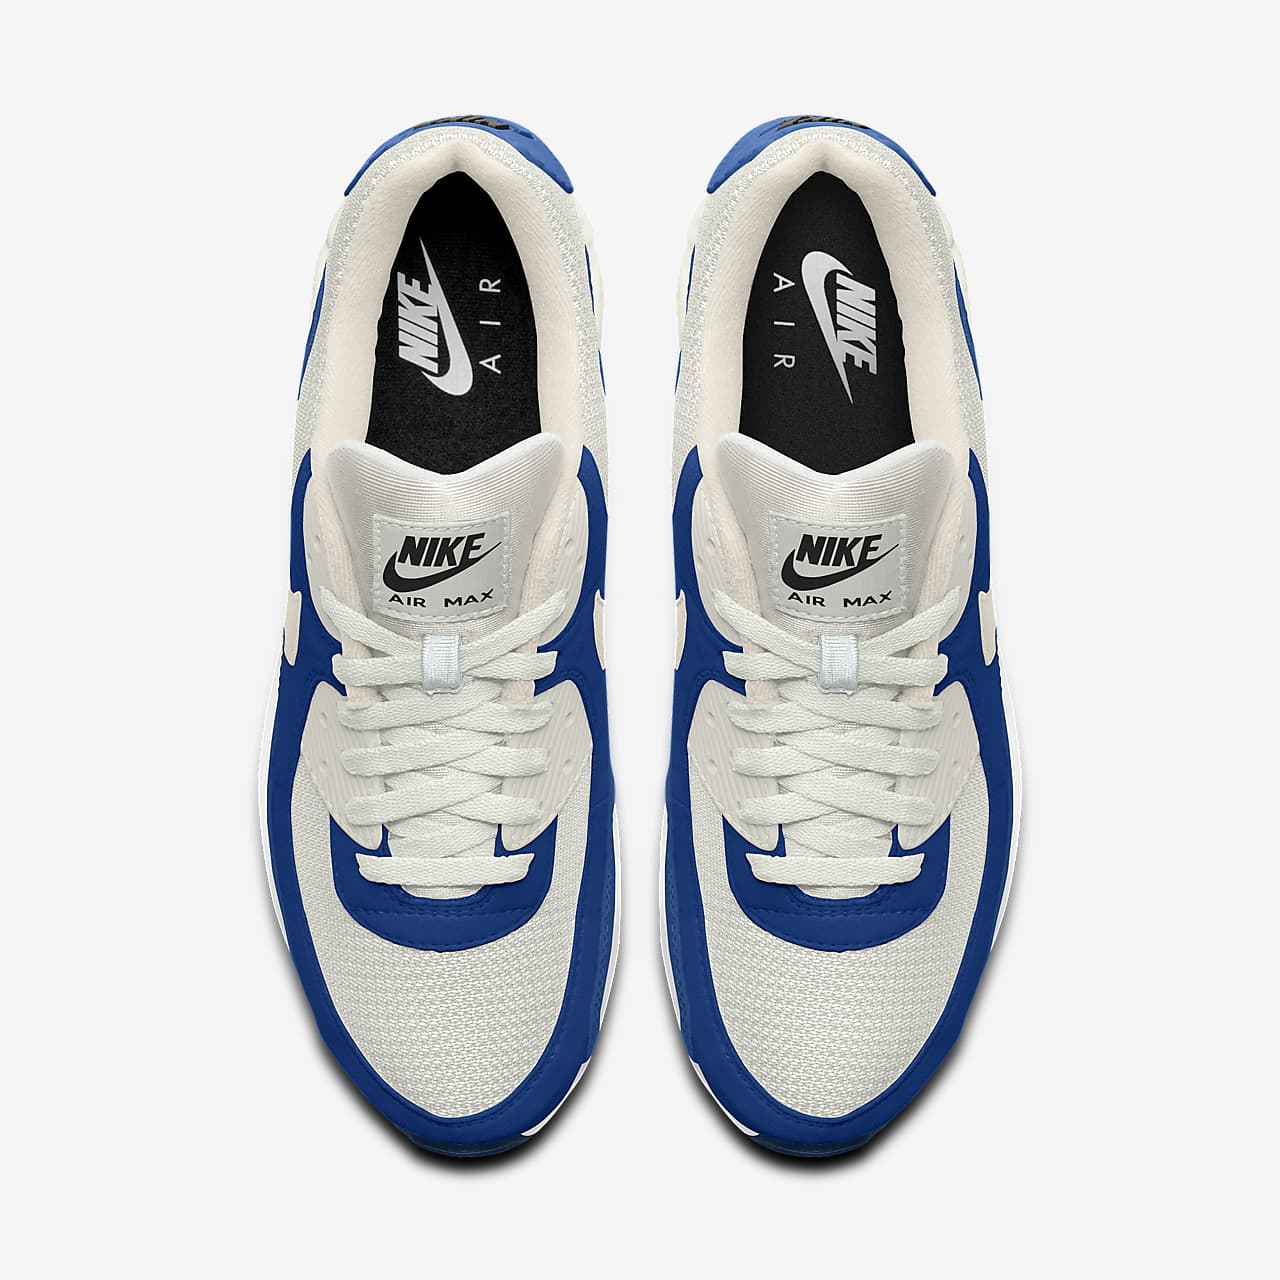 Chaussure personnalisable Nike Air Max 90 By You pour Homme. Nike LU